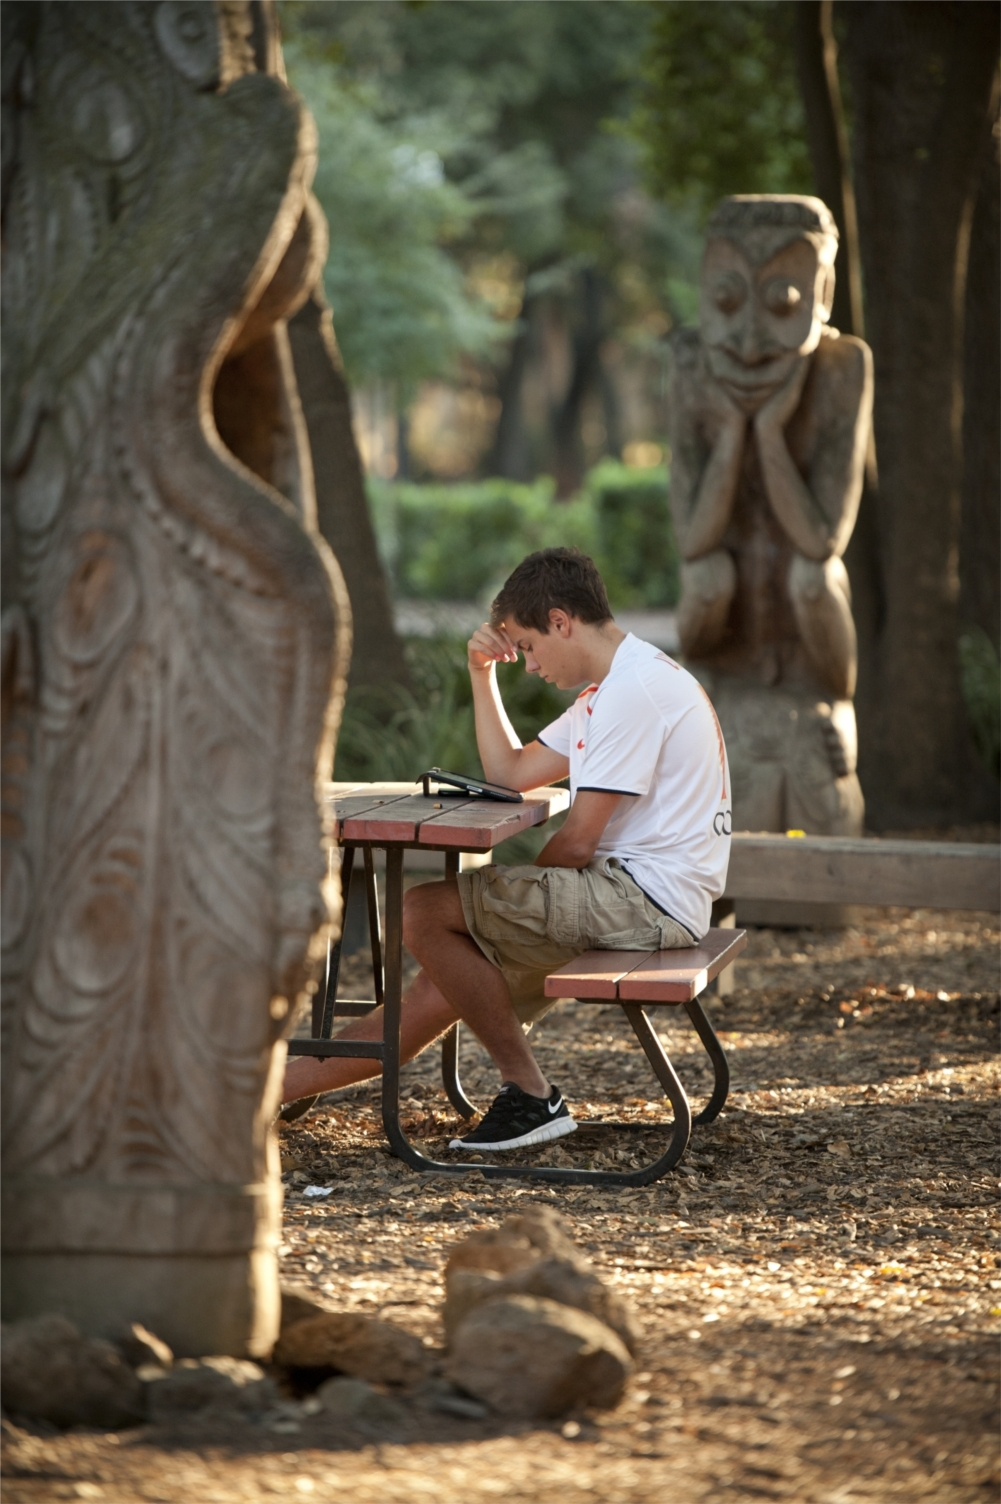 Stanford's campus offers unique settings for relaxation, or in this case, studying class notes in the Papua New Guinea art sculpture garden. Photo: Linda A. Cicero / Stanford News Service